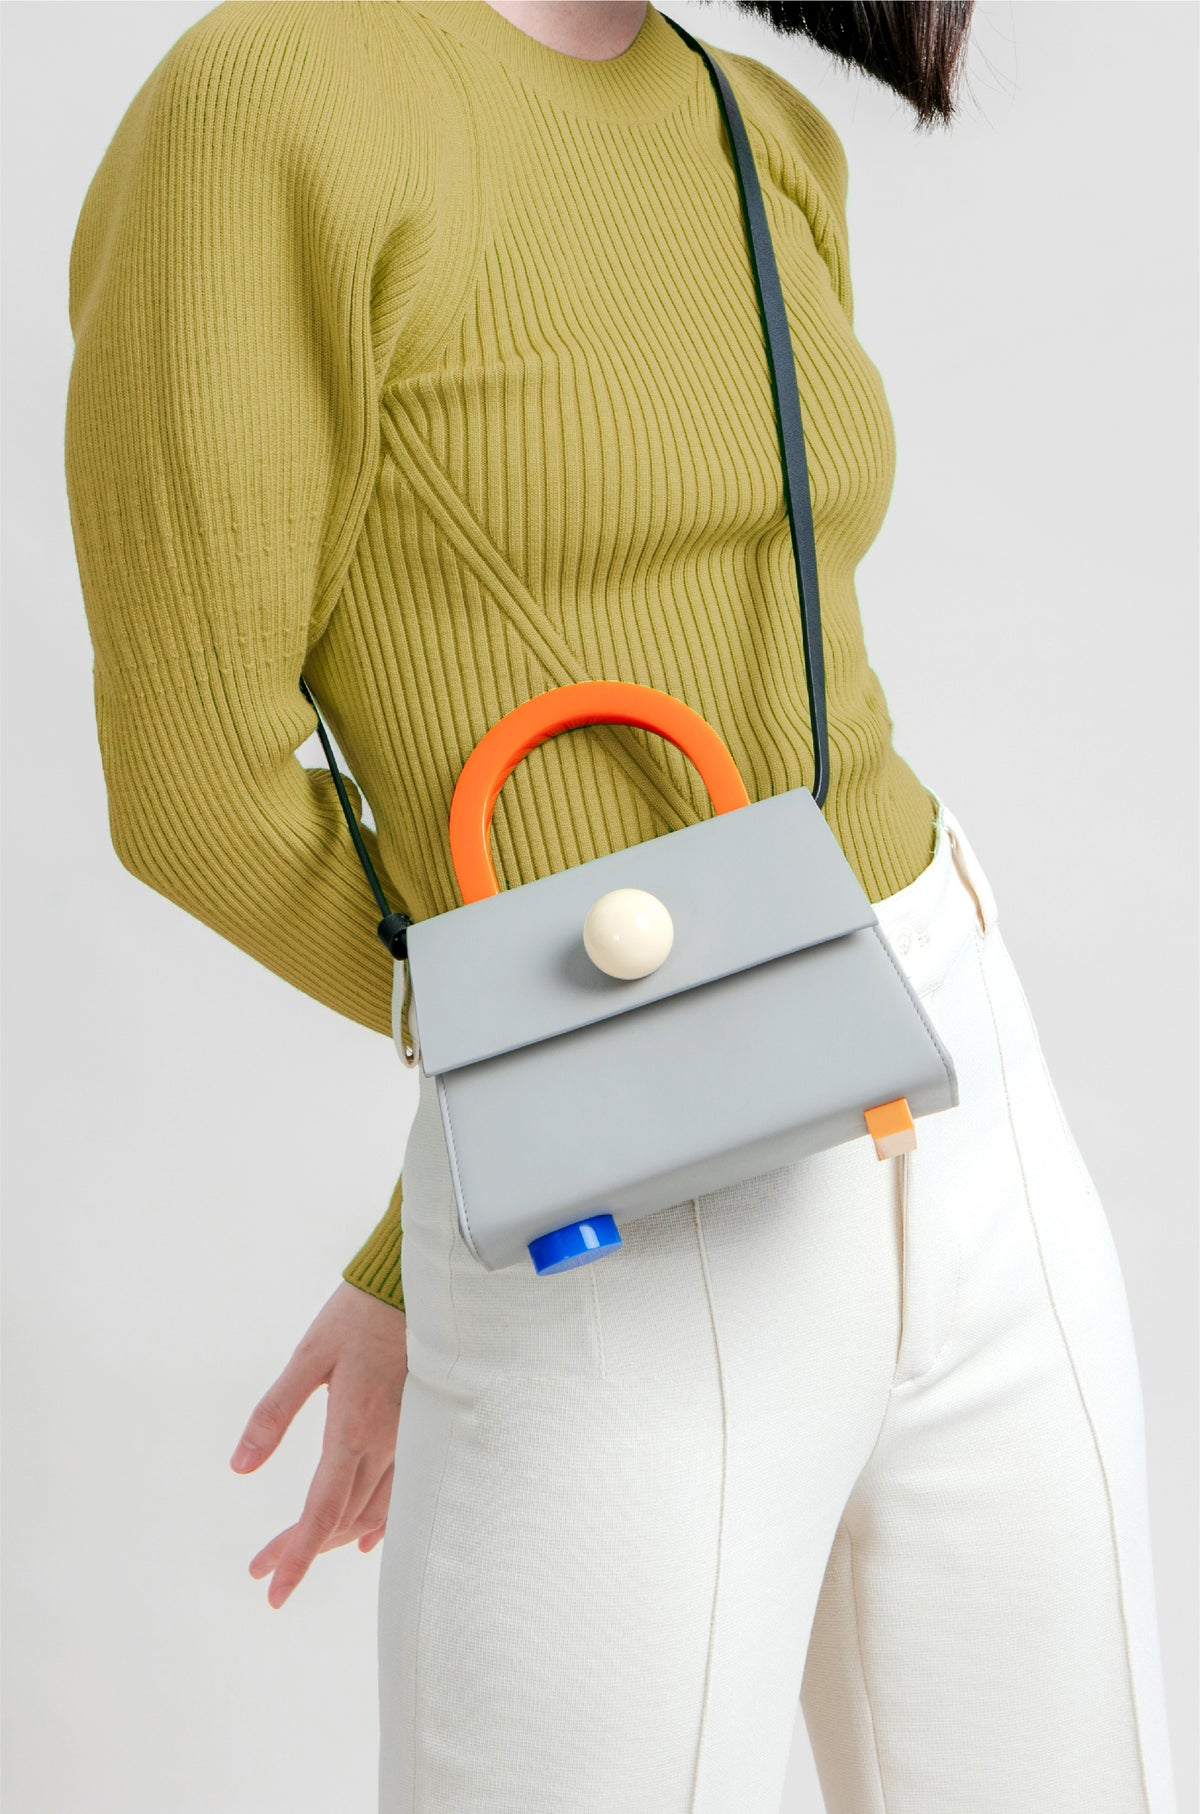 Image of Diva satchel bag • Grey with strap - Limited quantities